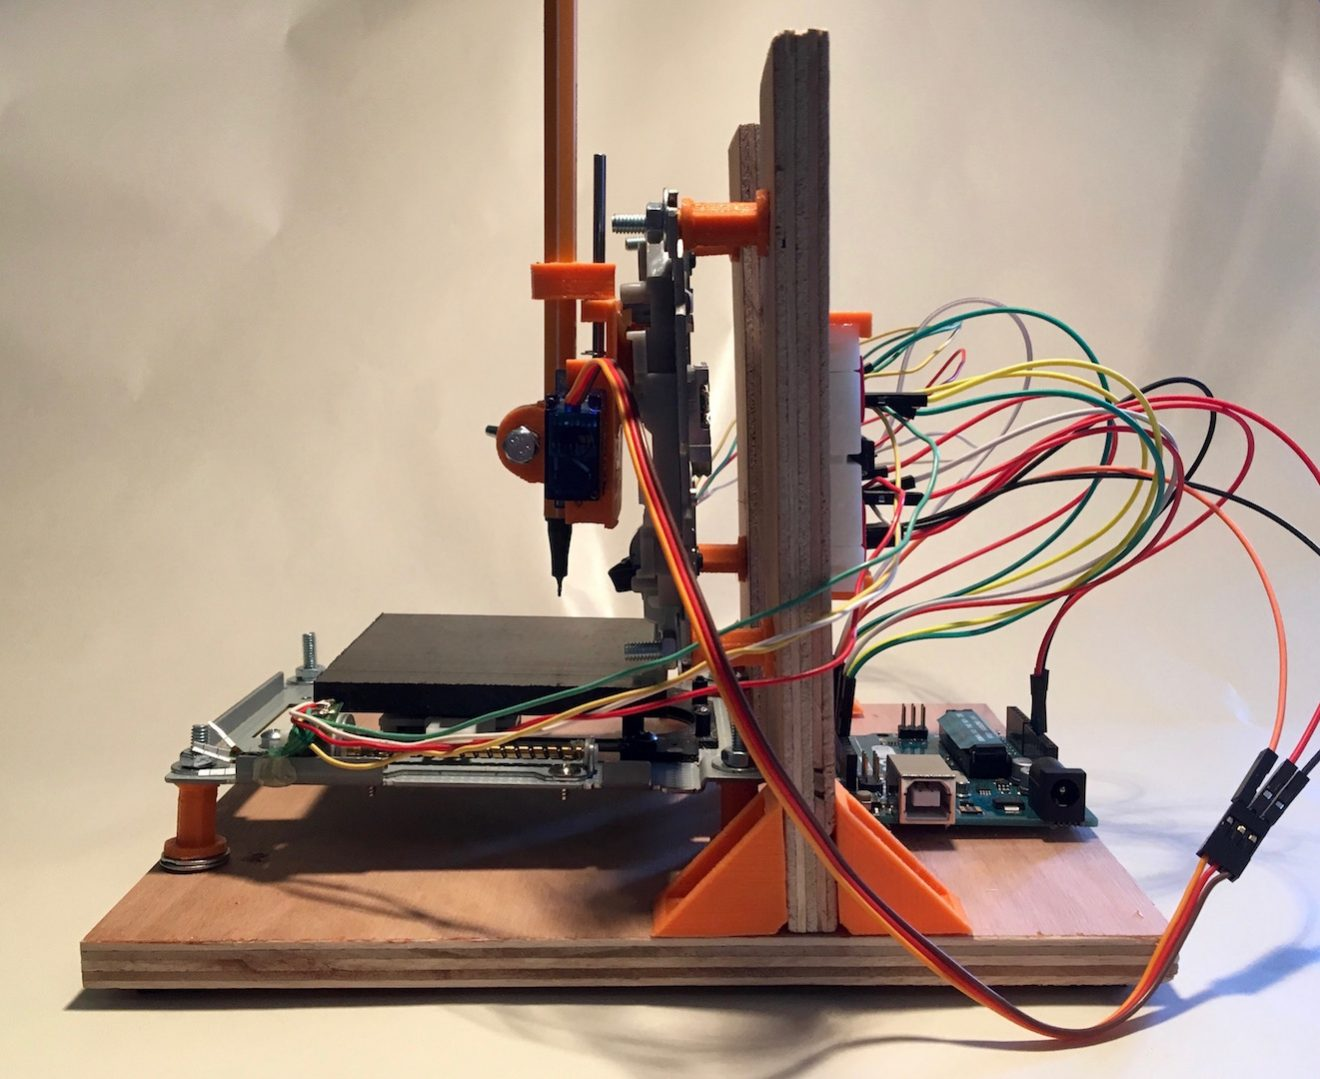 Make A Mini Cnc Plotter With Old Dvd Players Arduino And L293d Diy Power Point Wiring